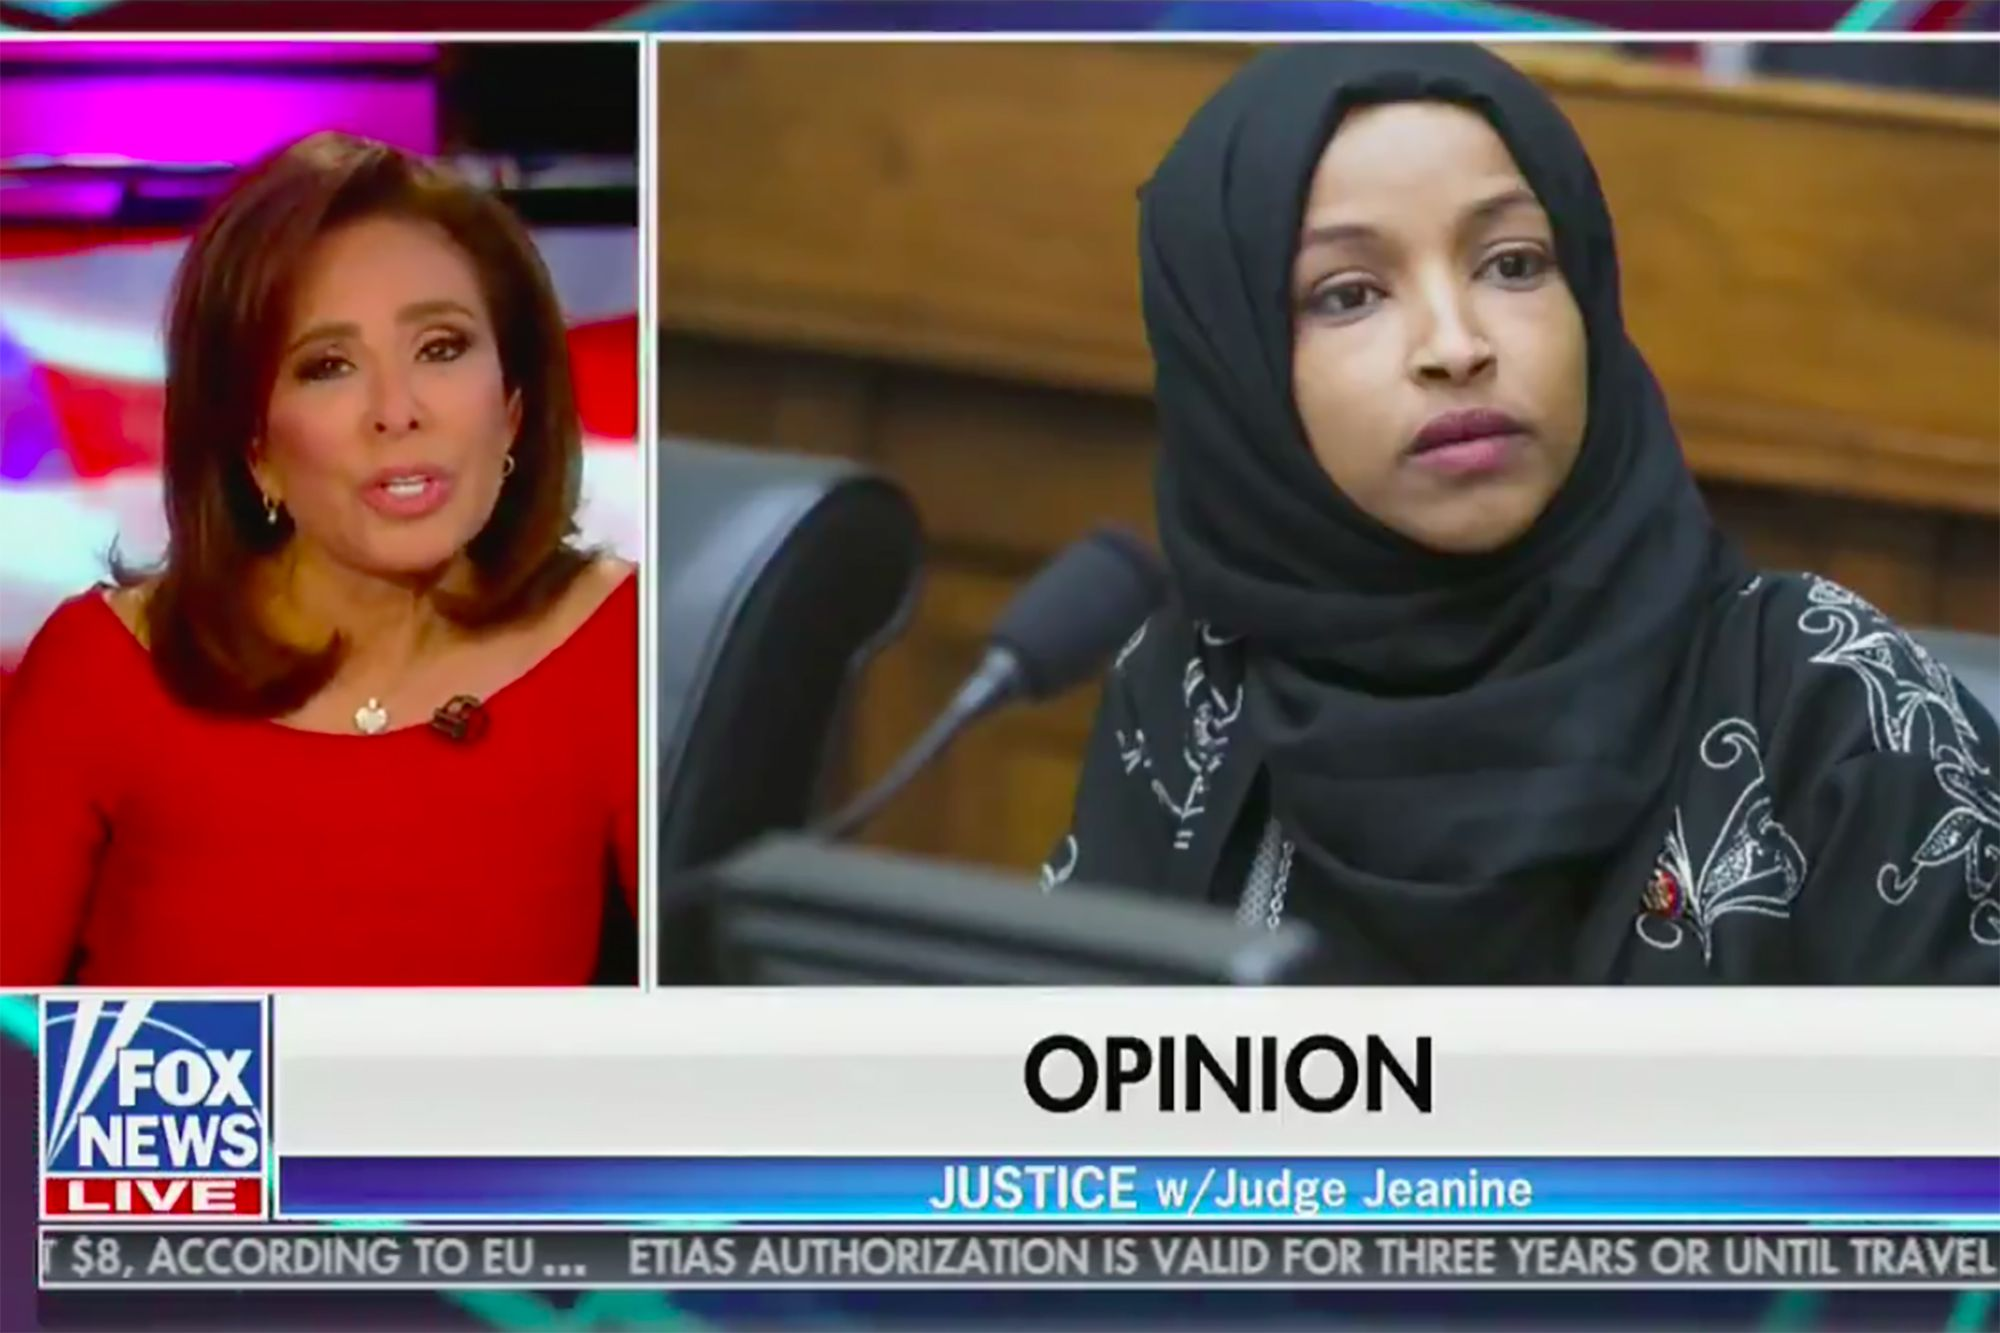 Judge Jeanine Pirro Suspended From Fox Media For Speaking The Truth